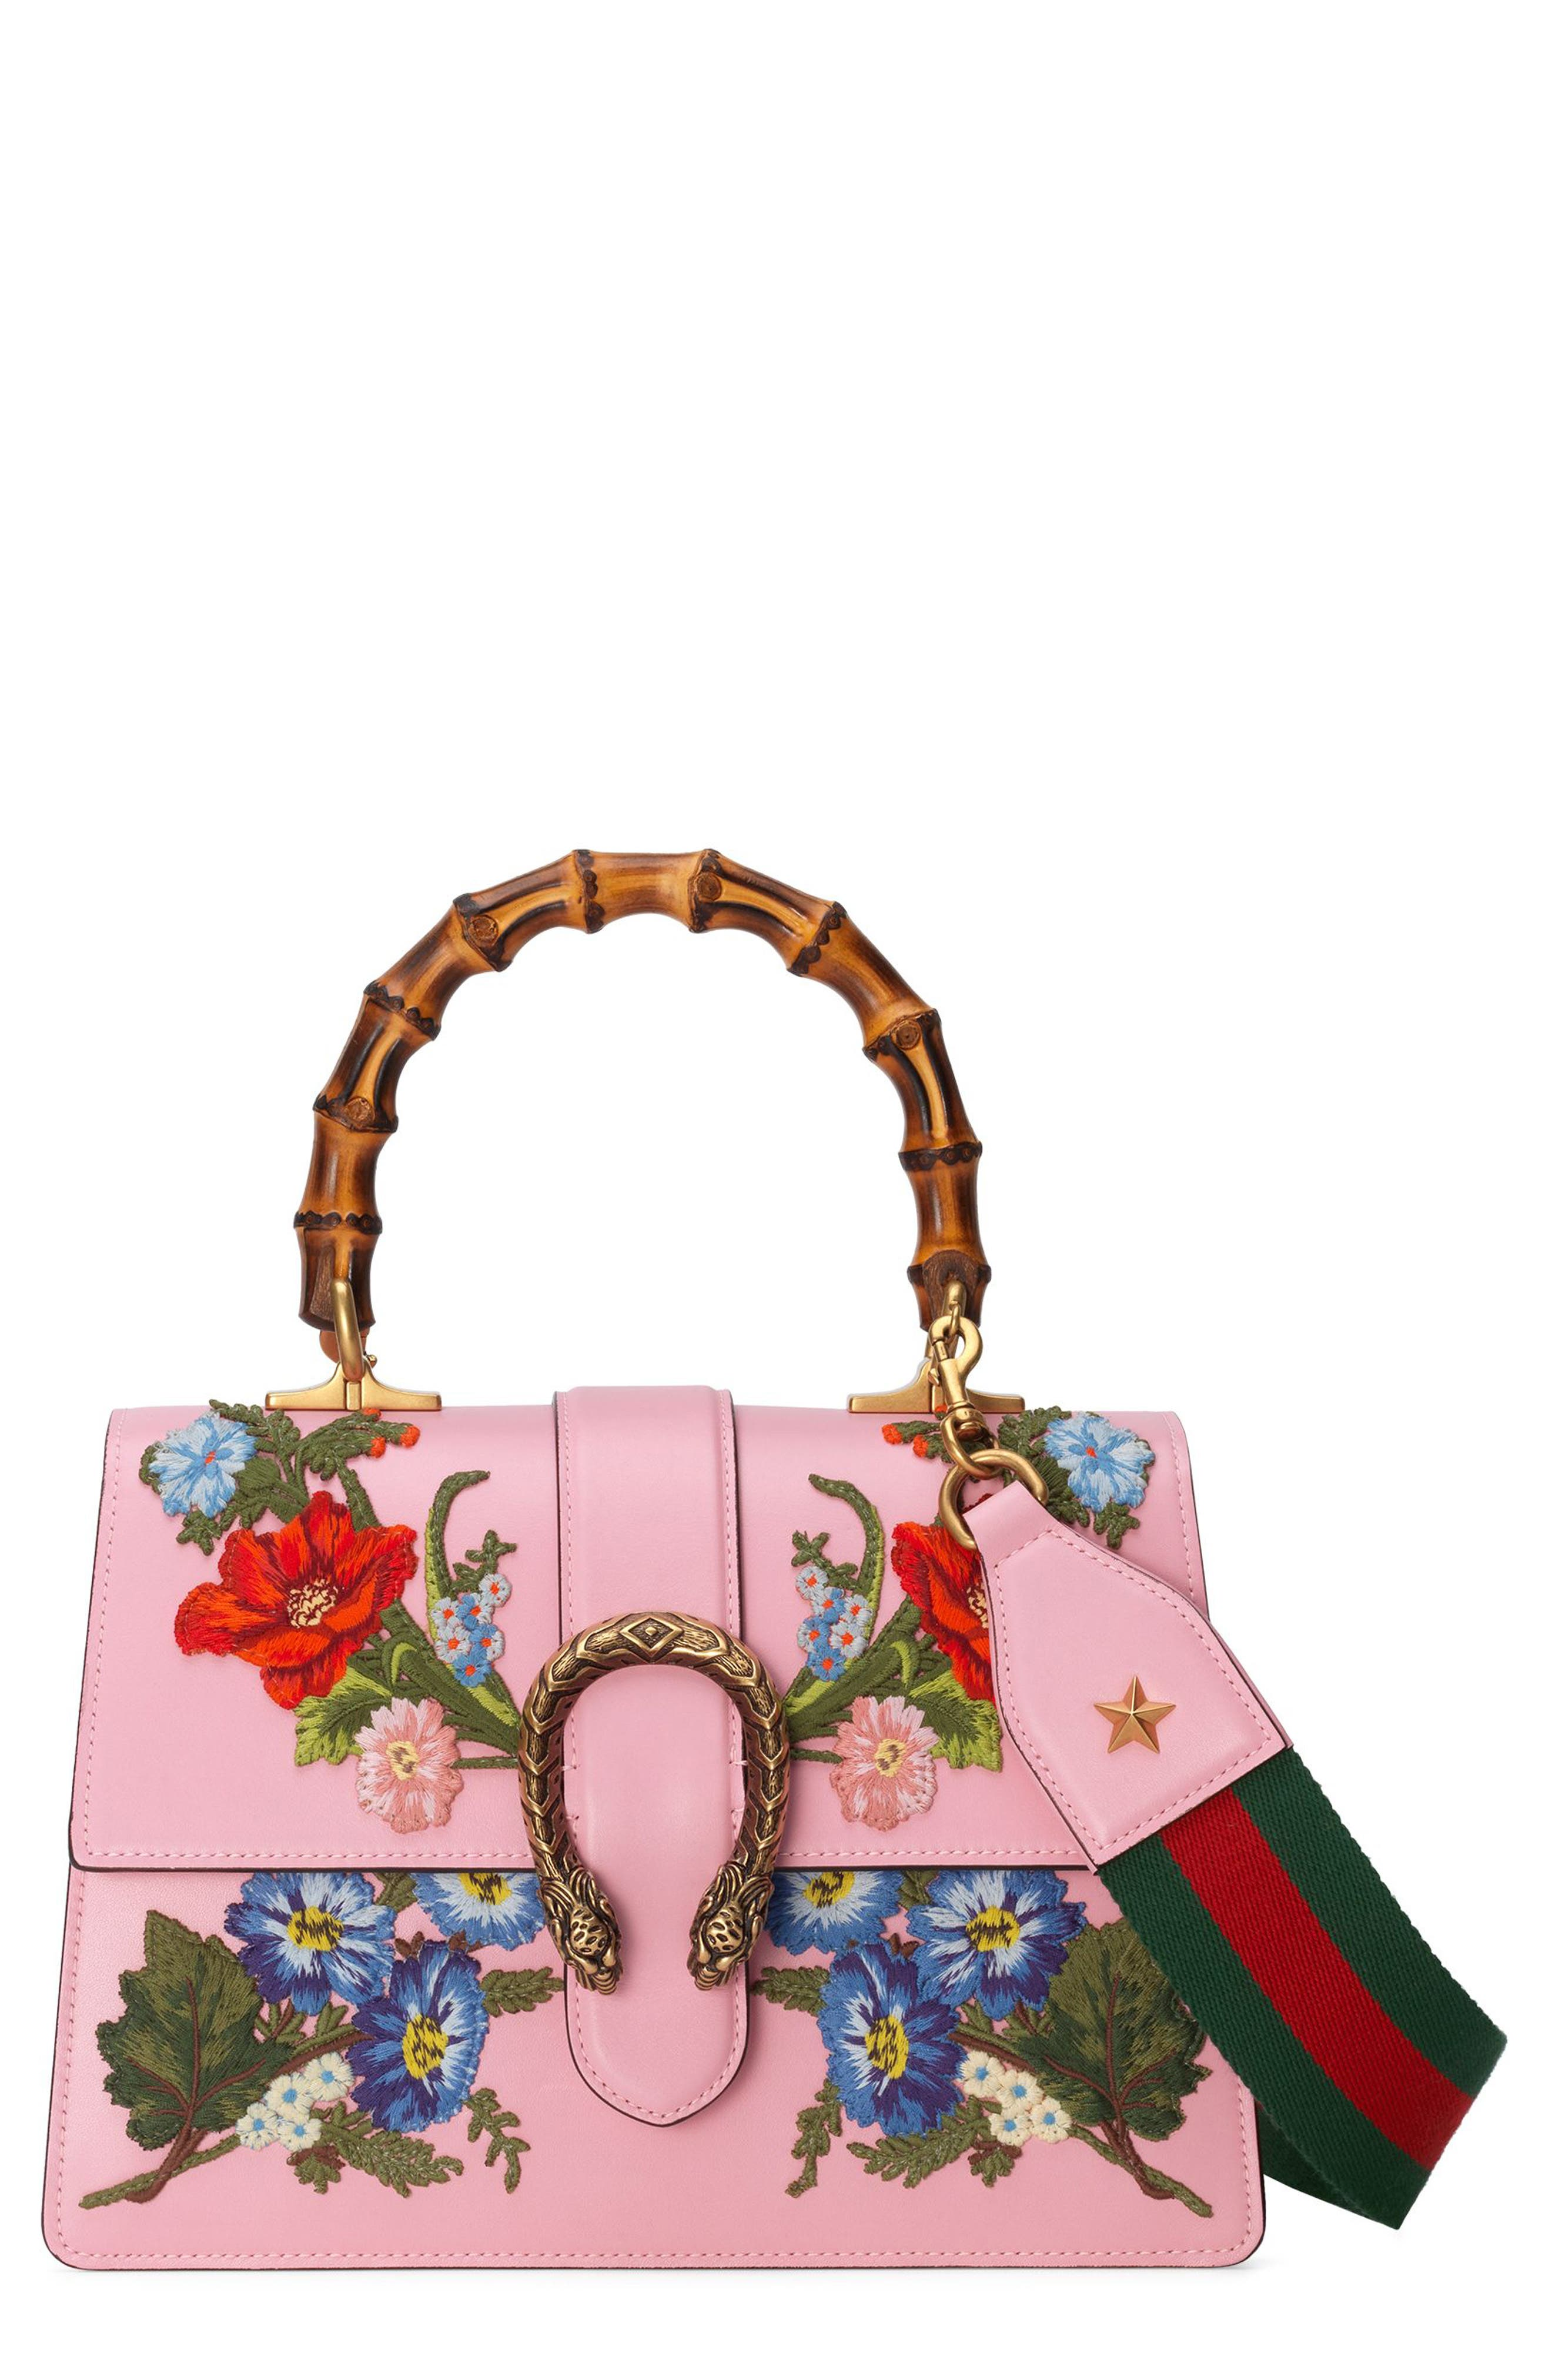 Main Image - Gucci Small Dionysus Top Handle Leather Shoulder Bag